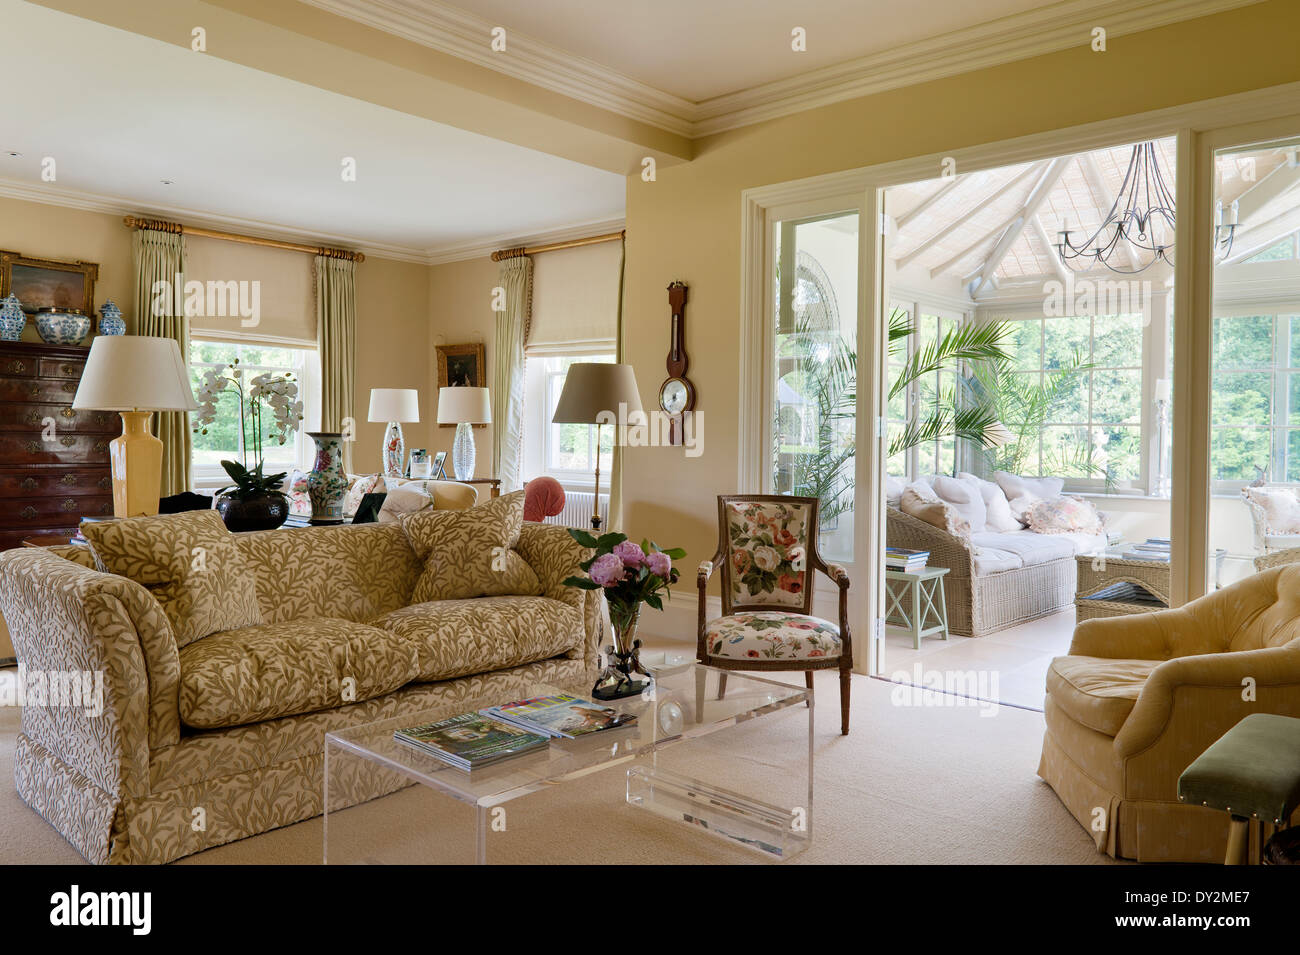 living room extension French windows - Stock Image